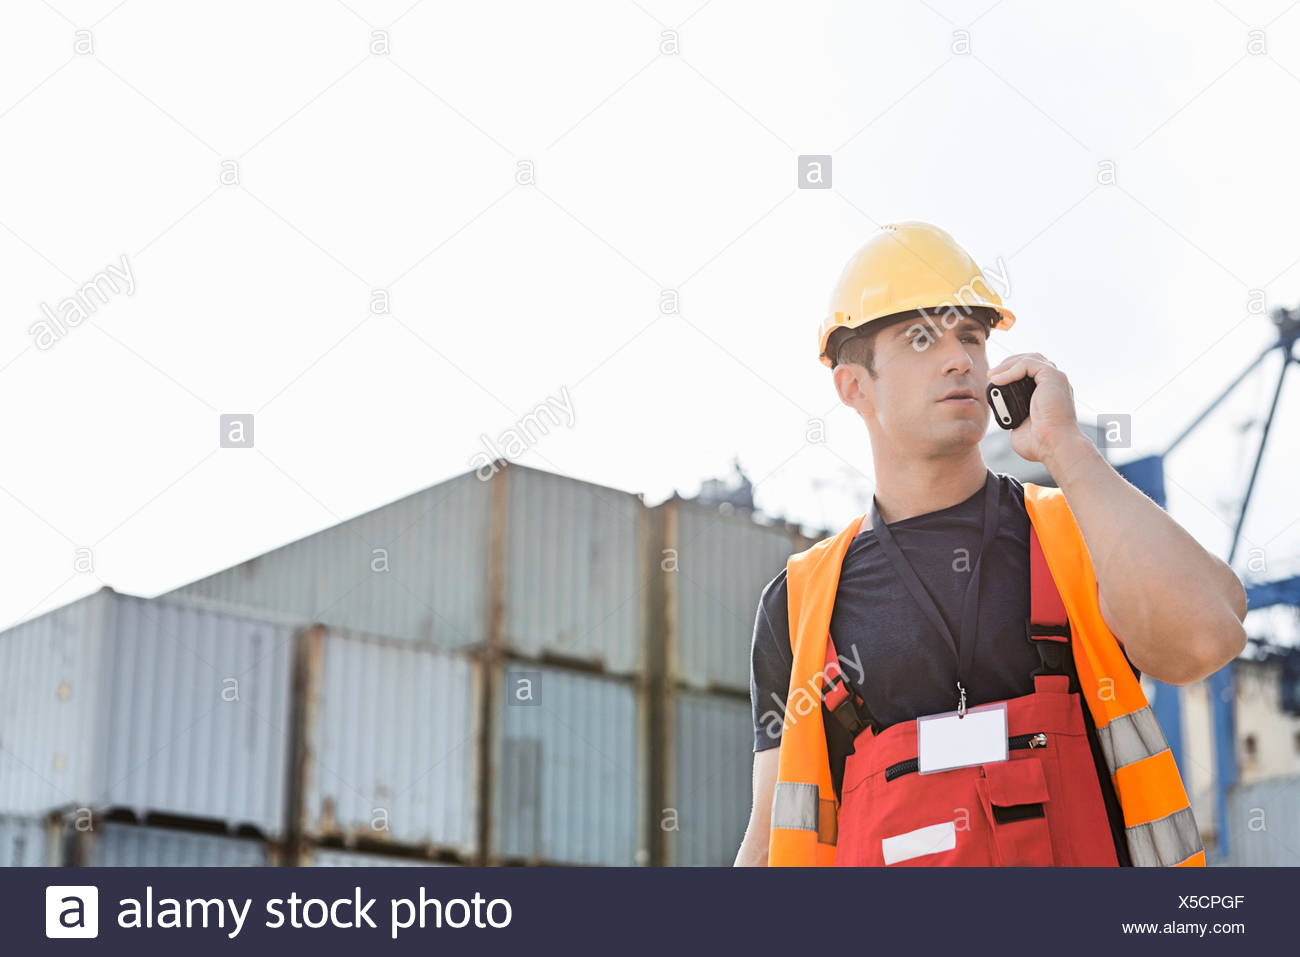 Male worker using walkie-talkie in shipping yard - Stock Image